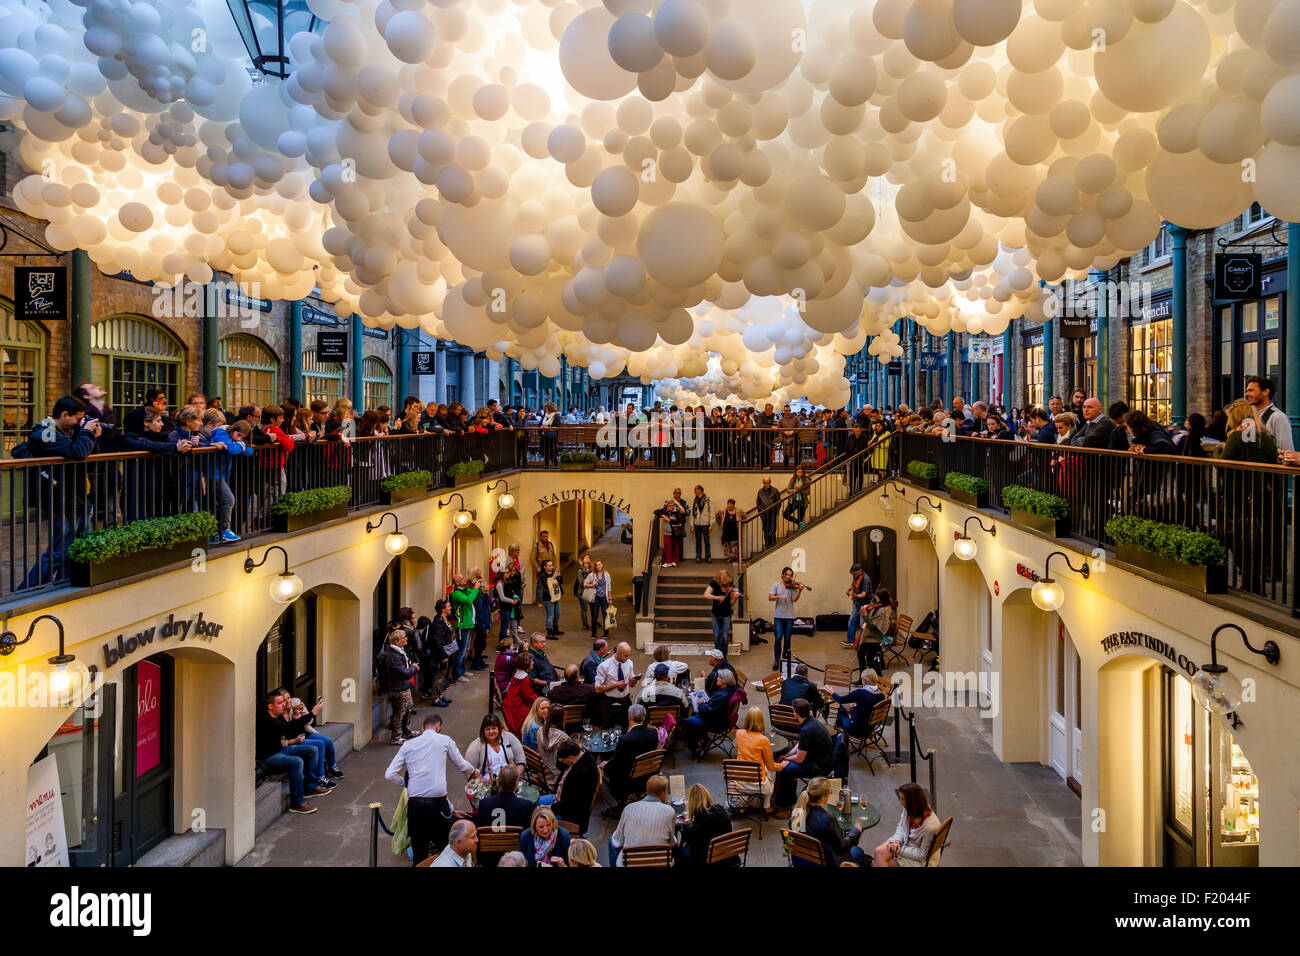 Shops and Restaurants, Covent Garden, London, England Stock Photo ...